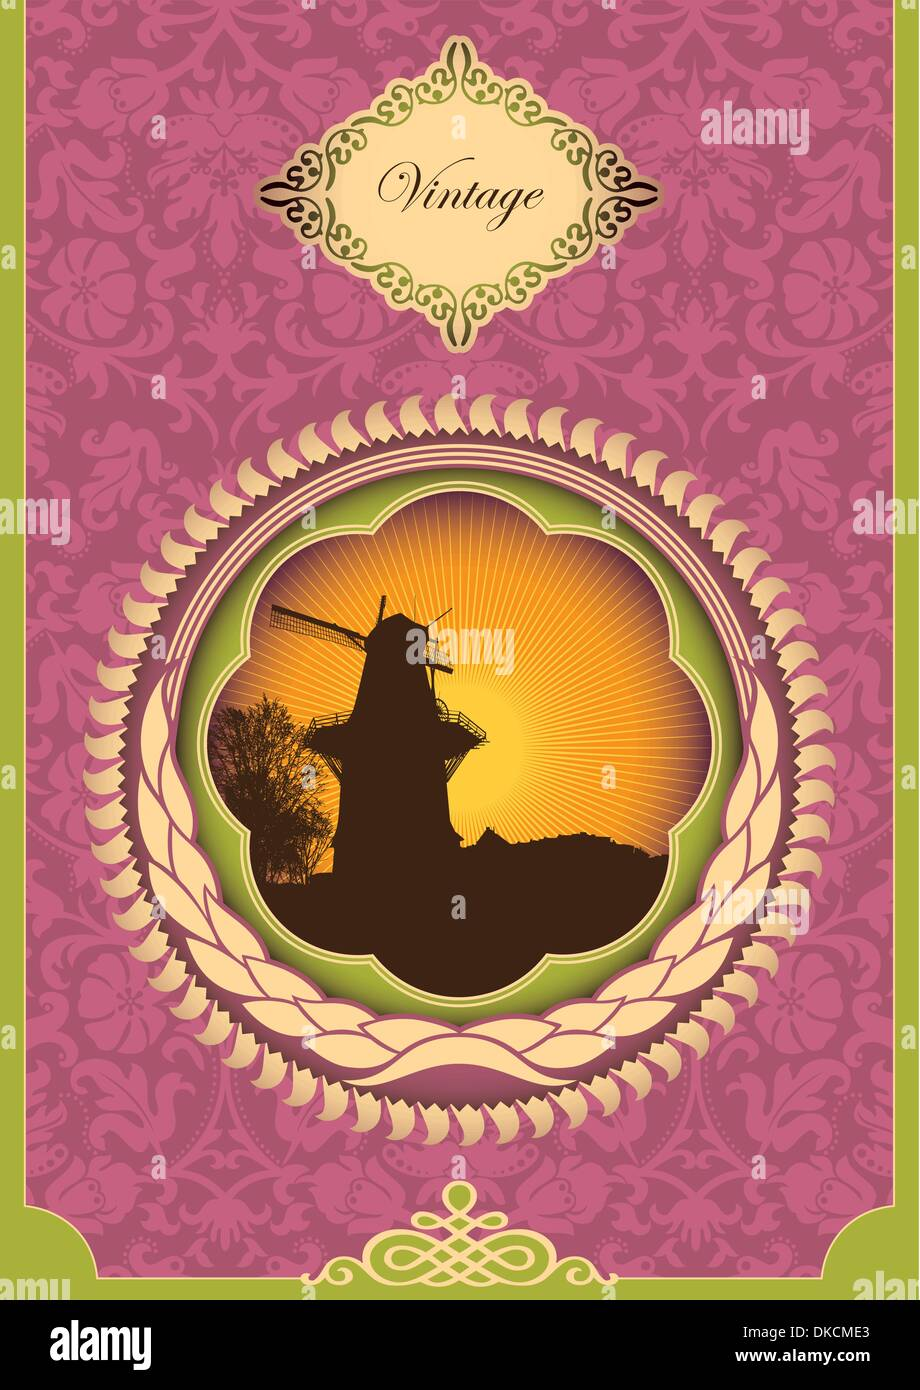 Vintage poster with windmill - Stock Image